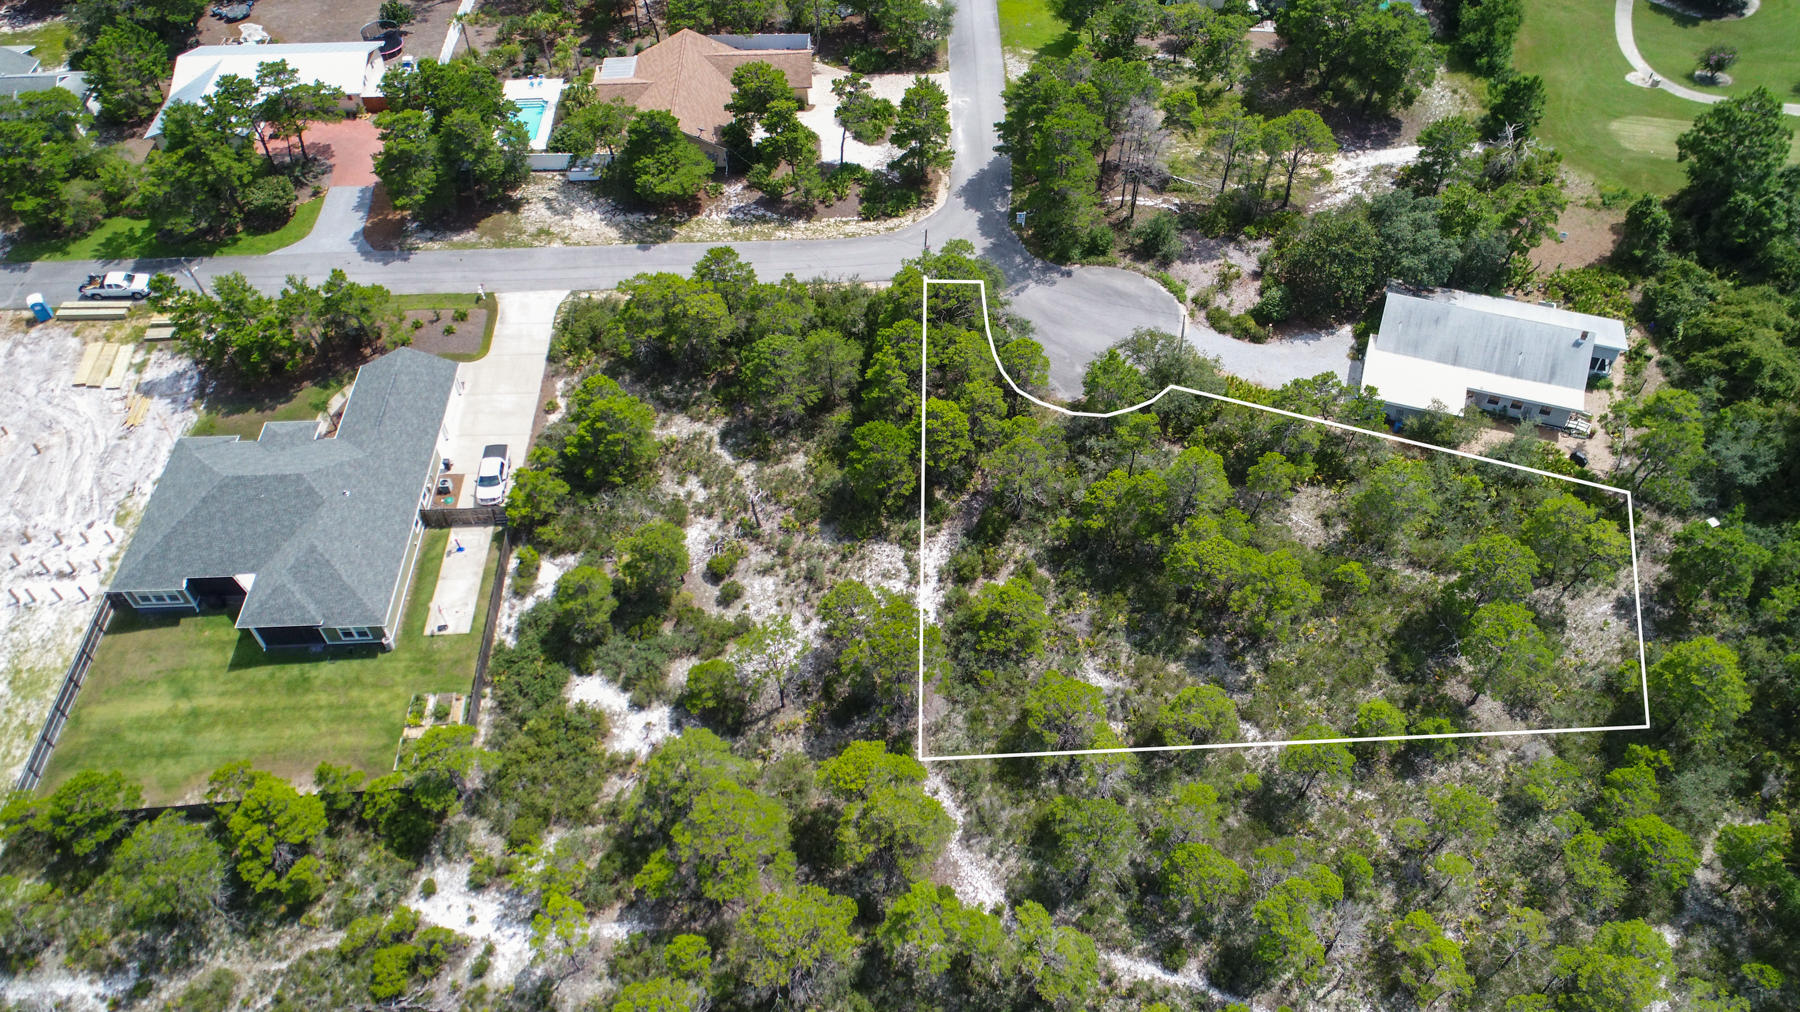 Not many lots left in this private area this close to the golf course. Close to the 11th tee box. This beautiful cul-de-sac lot offers an expansive footprint to build on. It is the perfect lot to build your dream home at the beach.  It is double the size of most lots for sale at the same prirce. Half acre to do what you wish without the HOA fees.